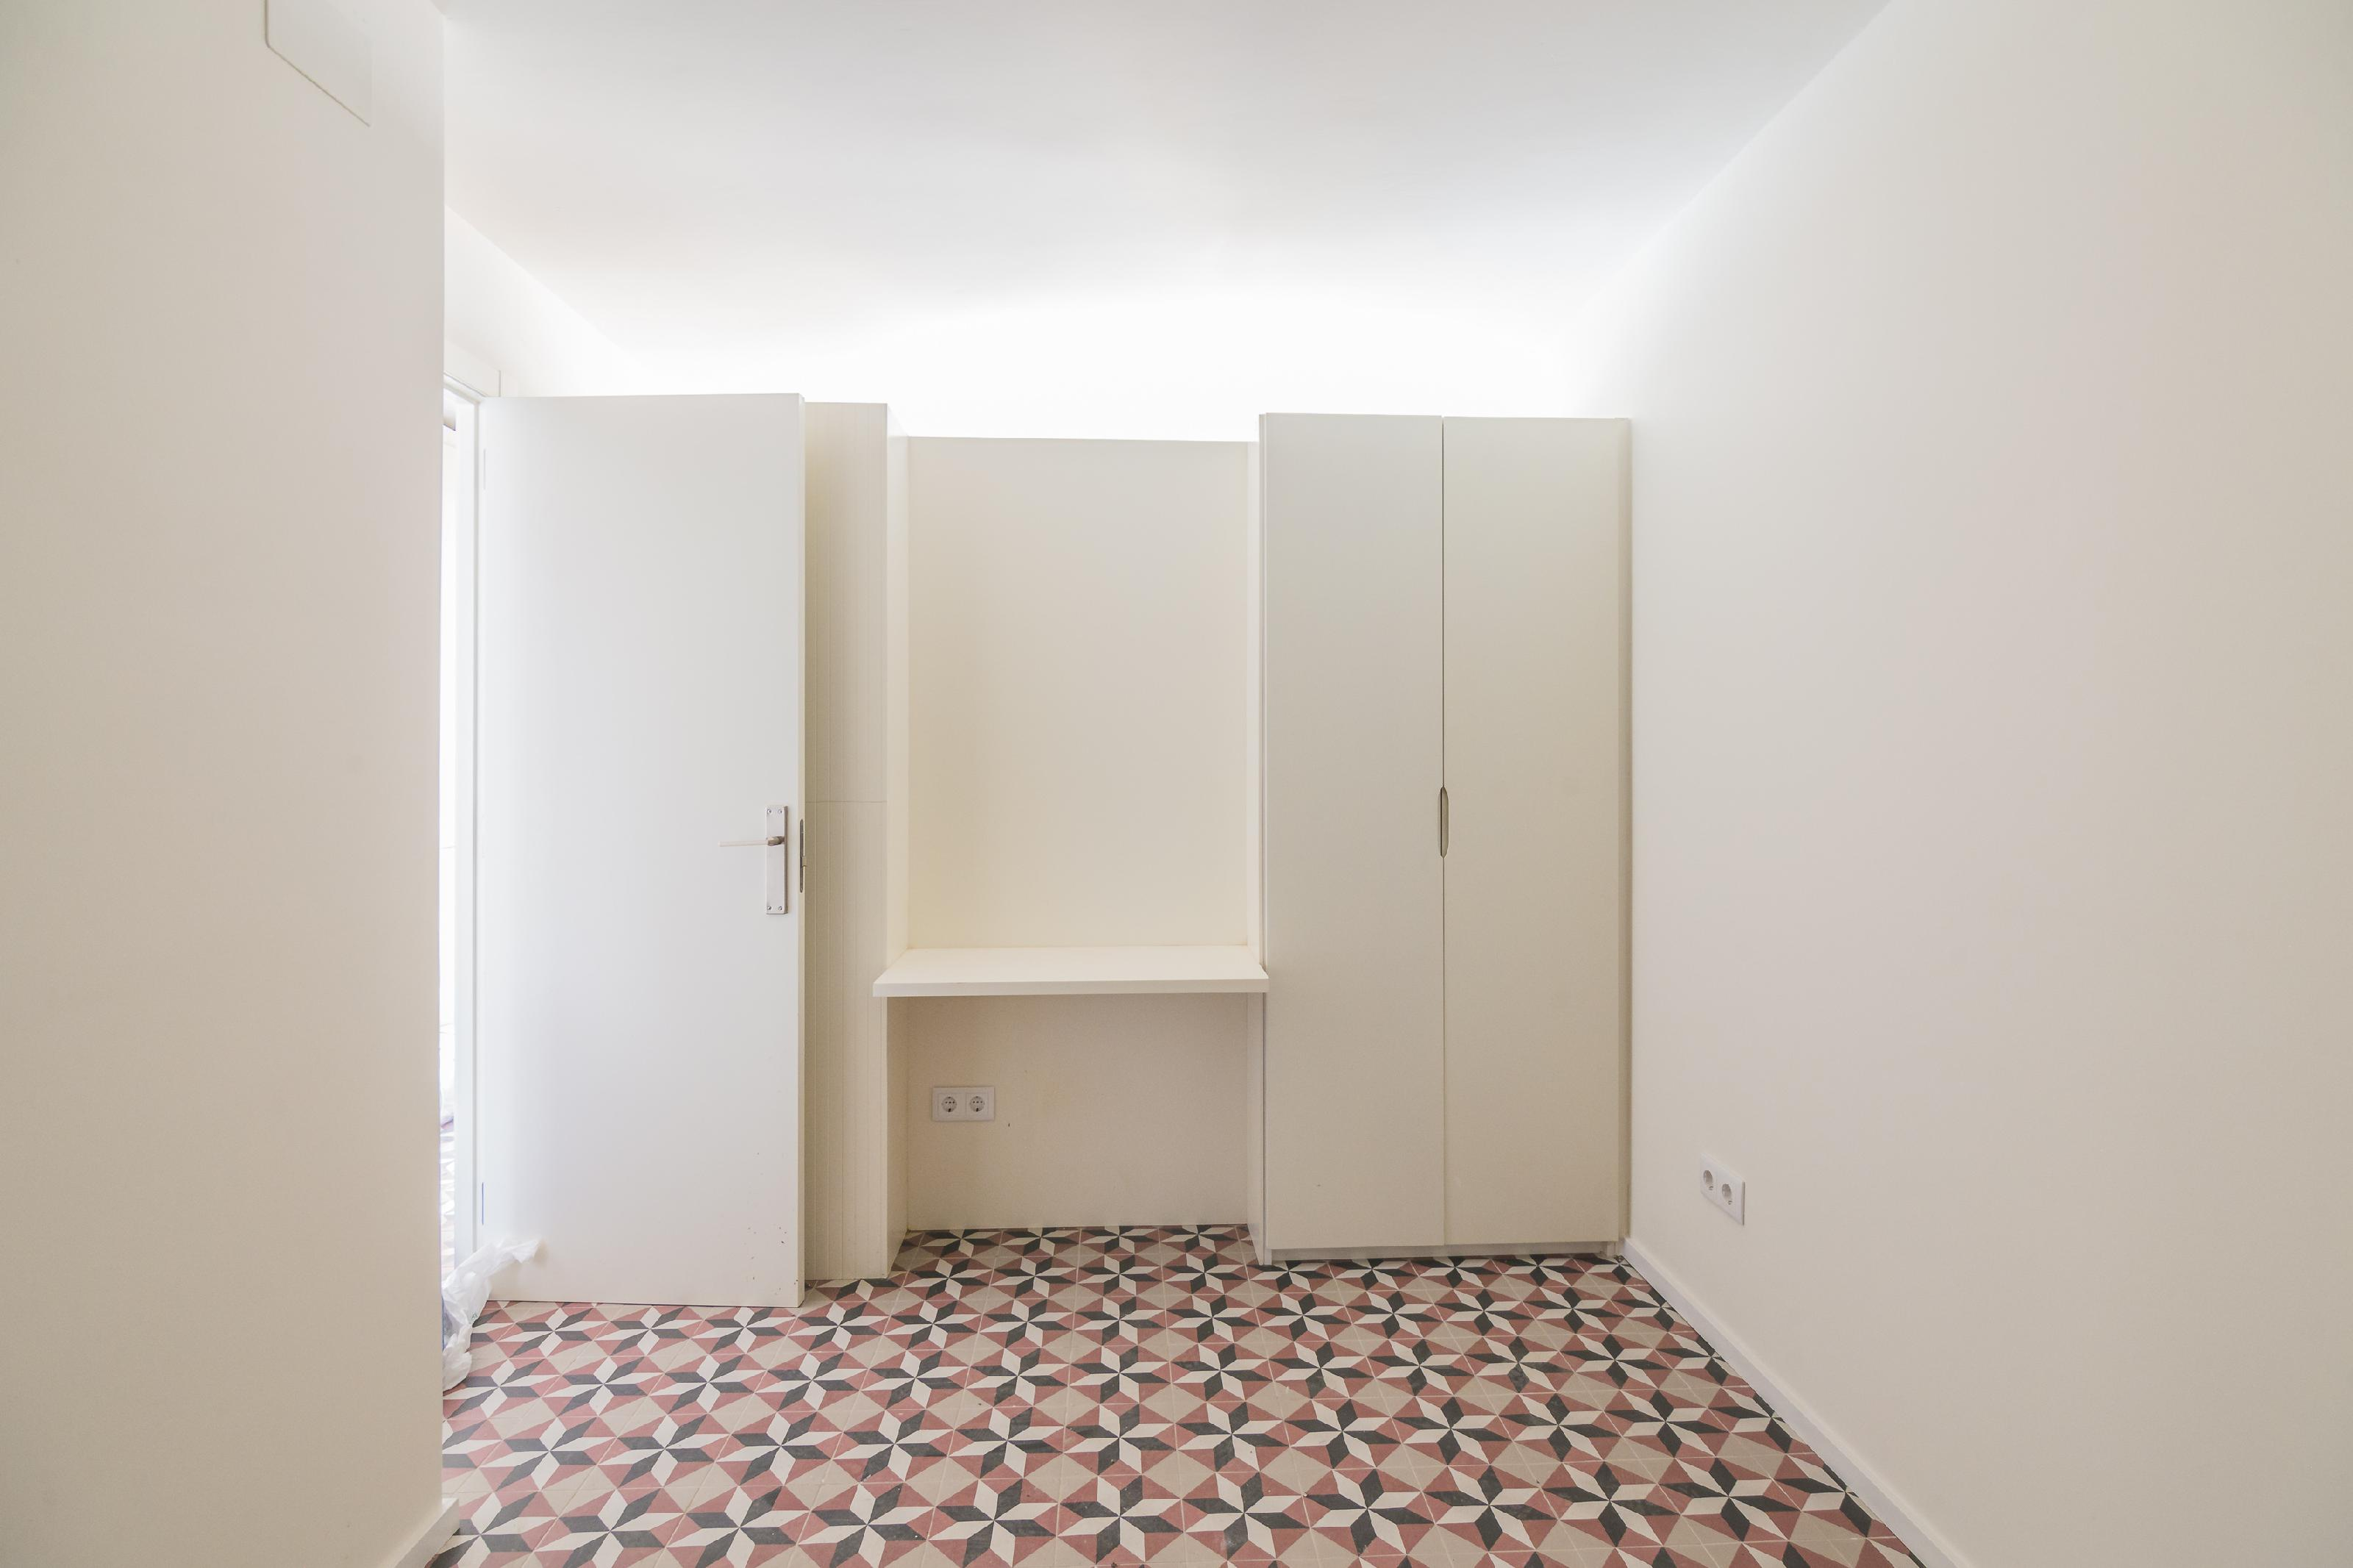 237520 Flat for sale in Ciutat Vella, St. Pere St. Caterina and La Ribera 11